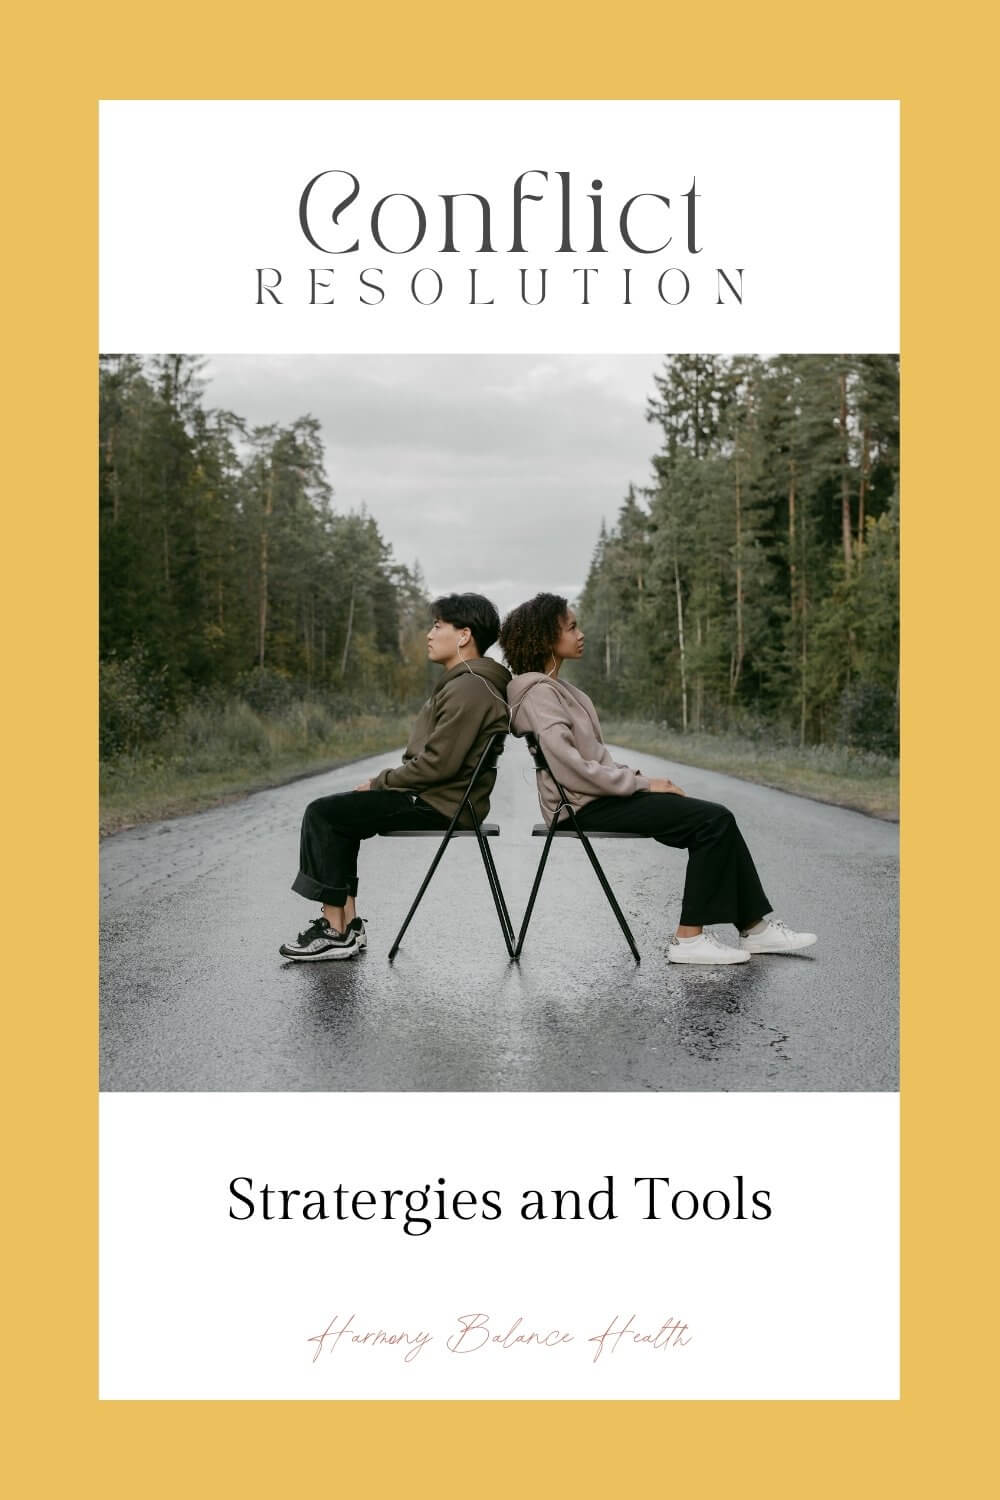 Conflict resolution strategies and tools